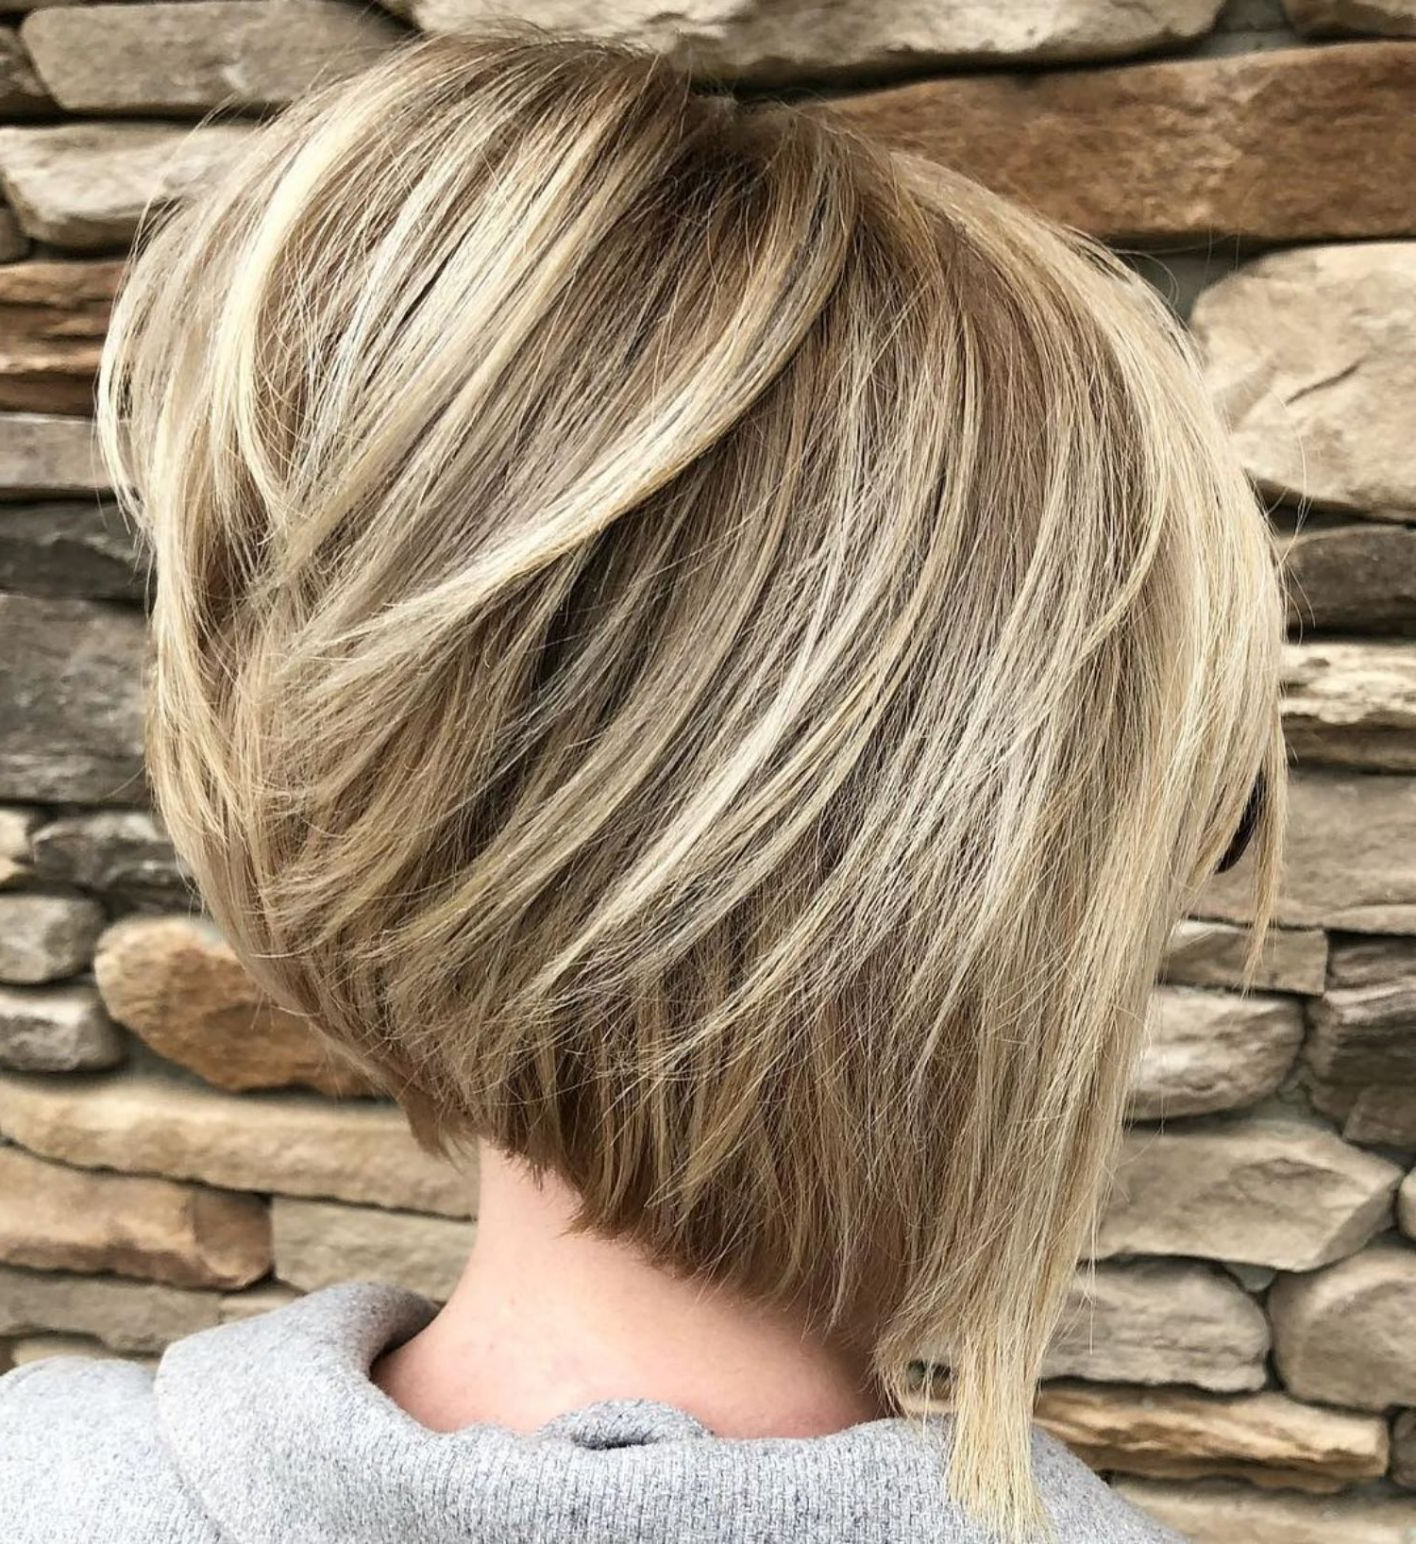 60 Layered Bob Styles: Modern Haircuts With Layers For Any Occasion Within Balayage Bob Haircuts With Layers (View 16 of 20)